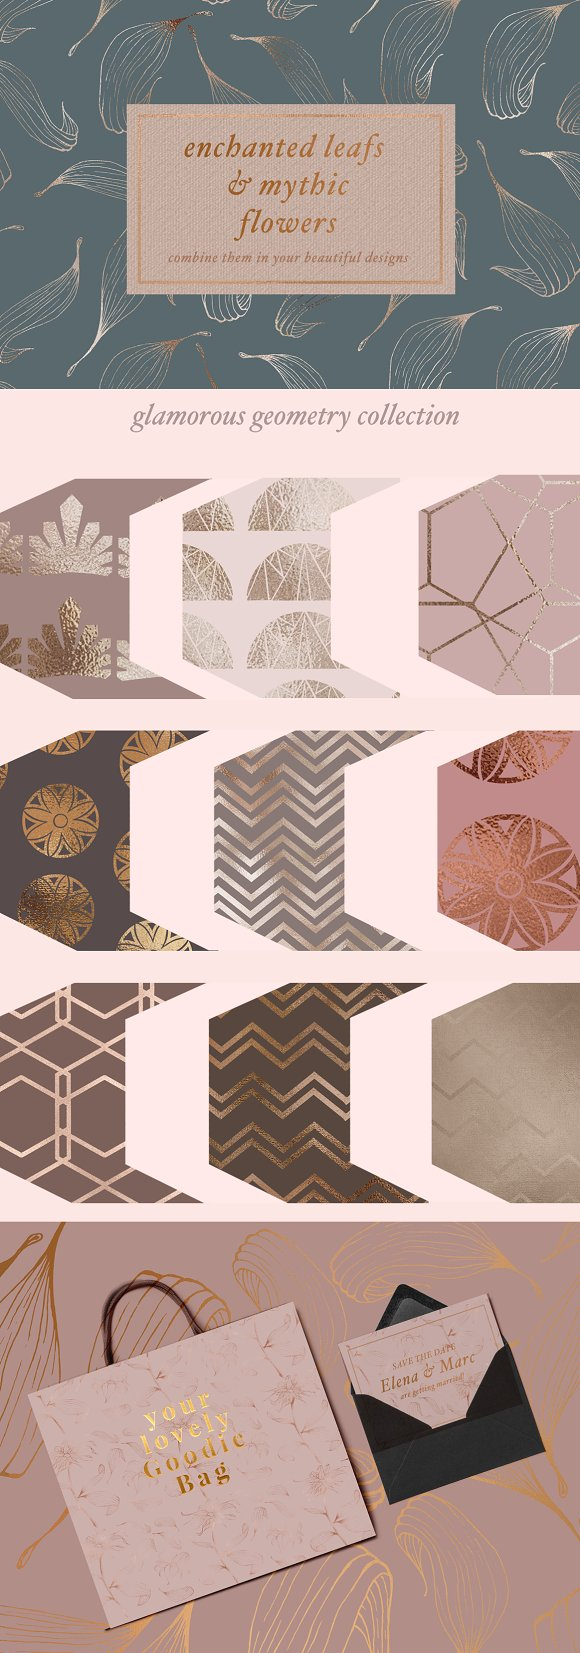 Gold Patterns Illustrations Patterns Creative Market - Graphic design invoice template word michael kors outlet online store